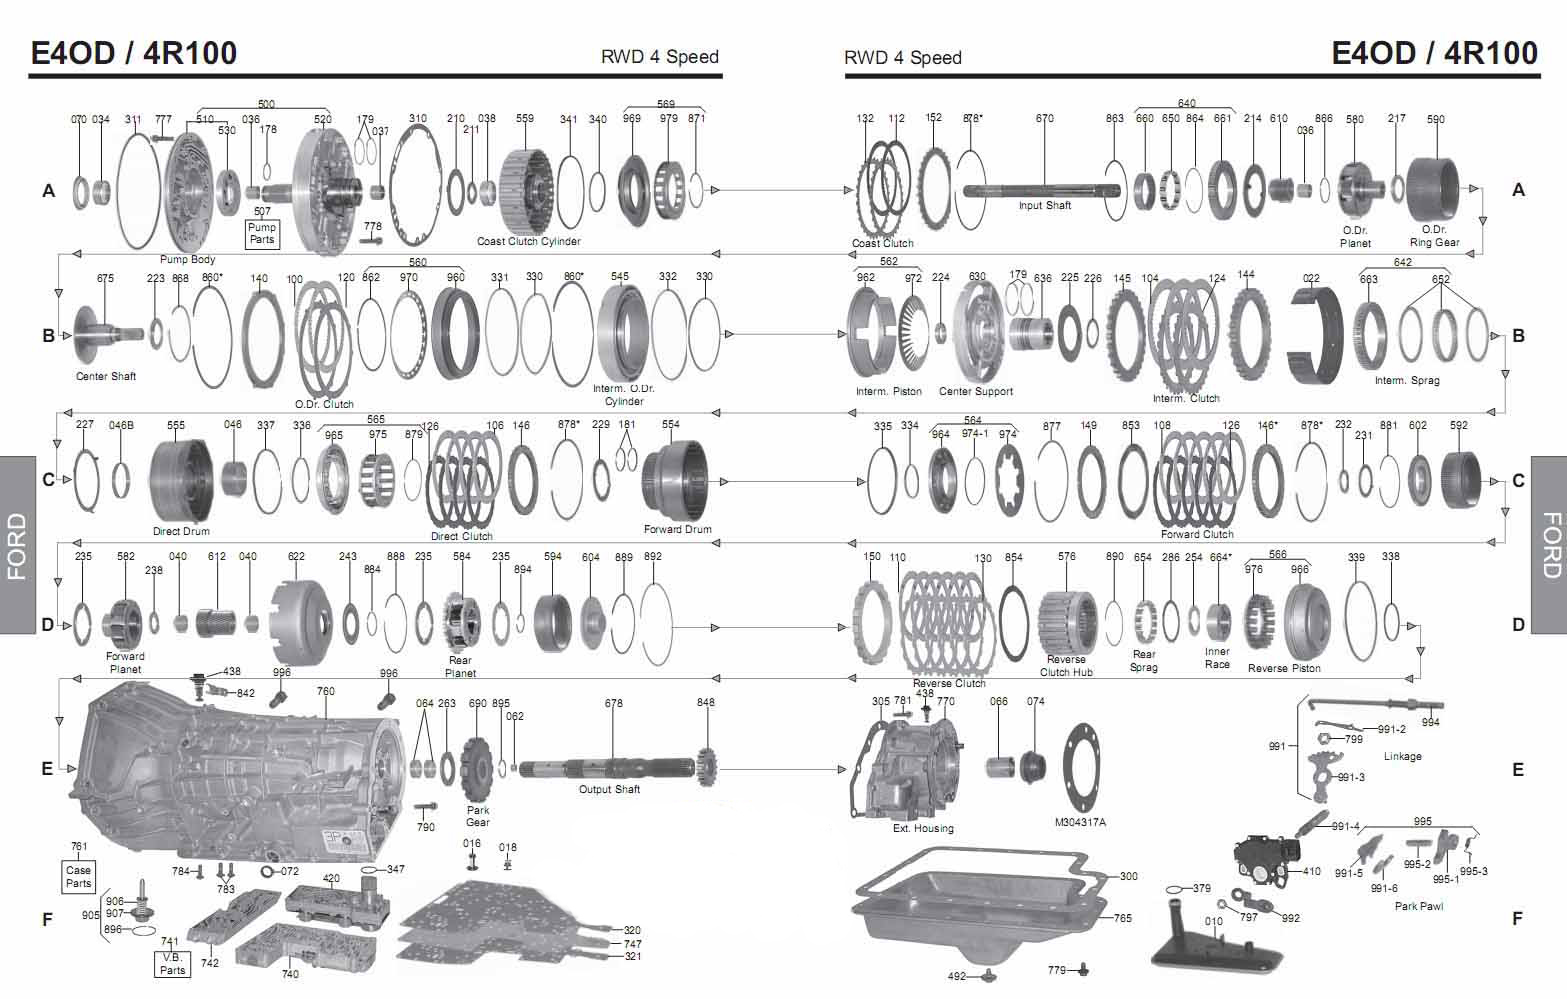 Transmission Repair Manuals 4r100 E4od